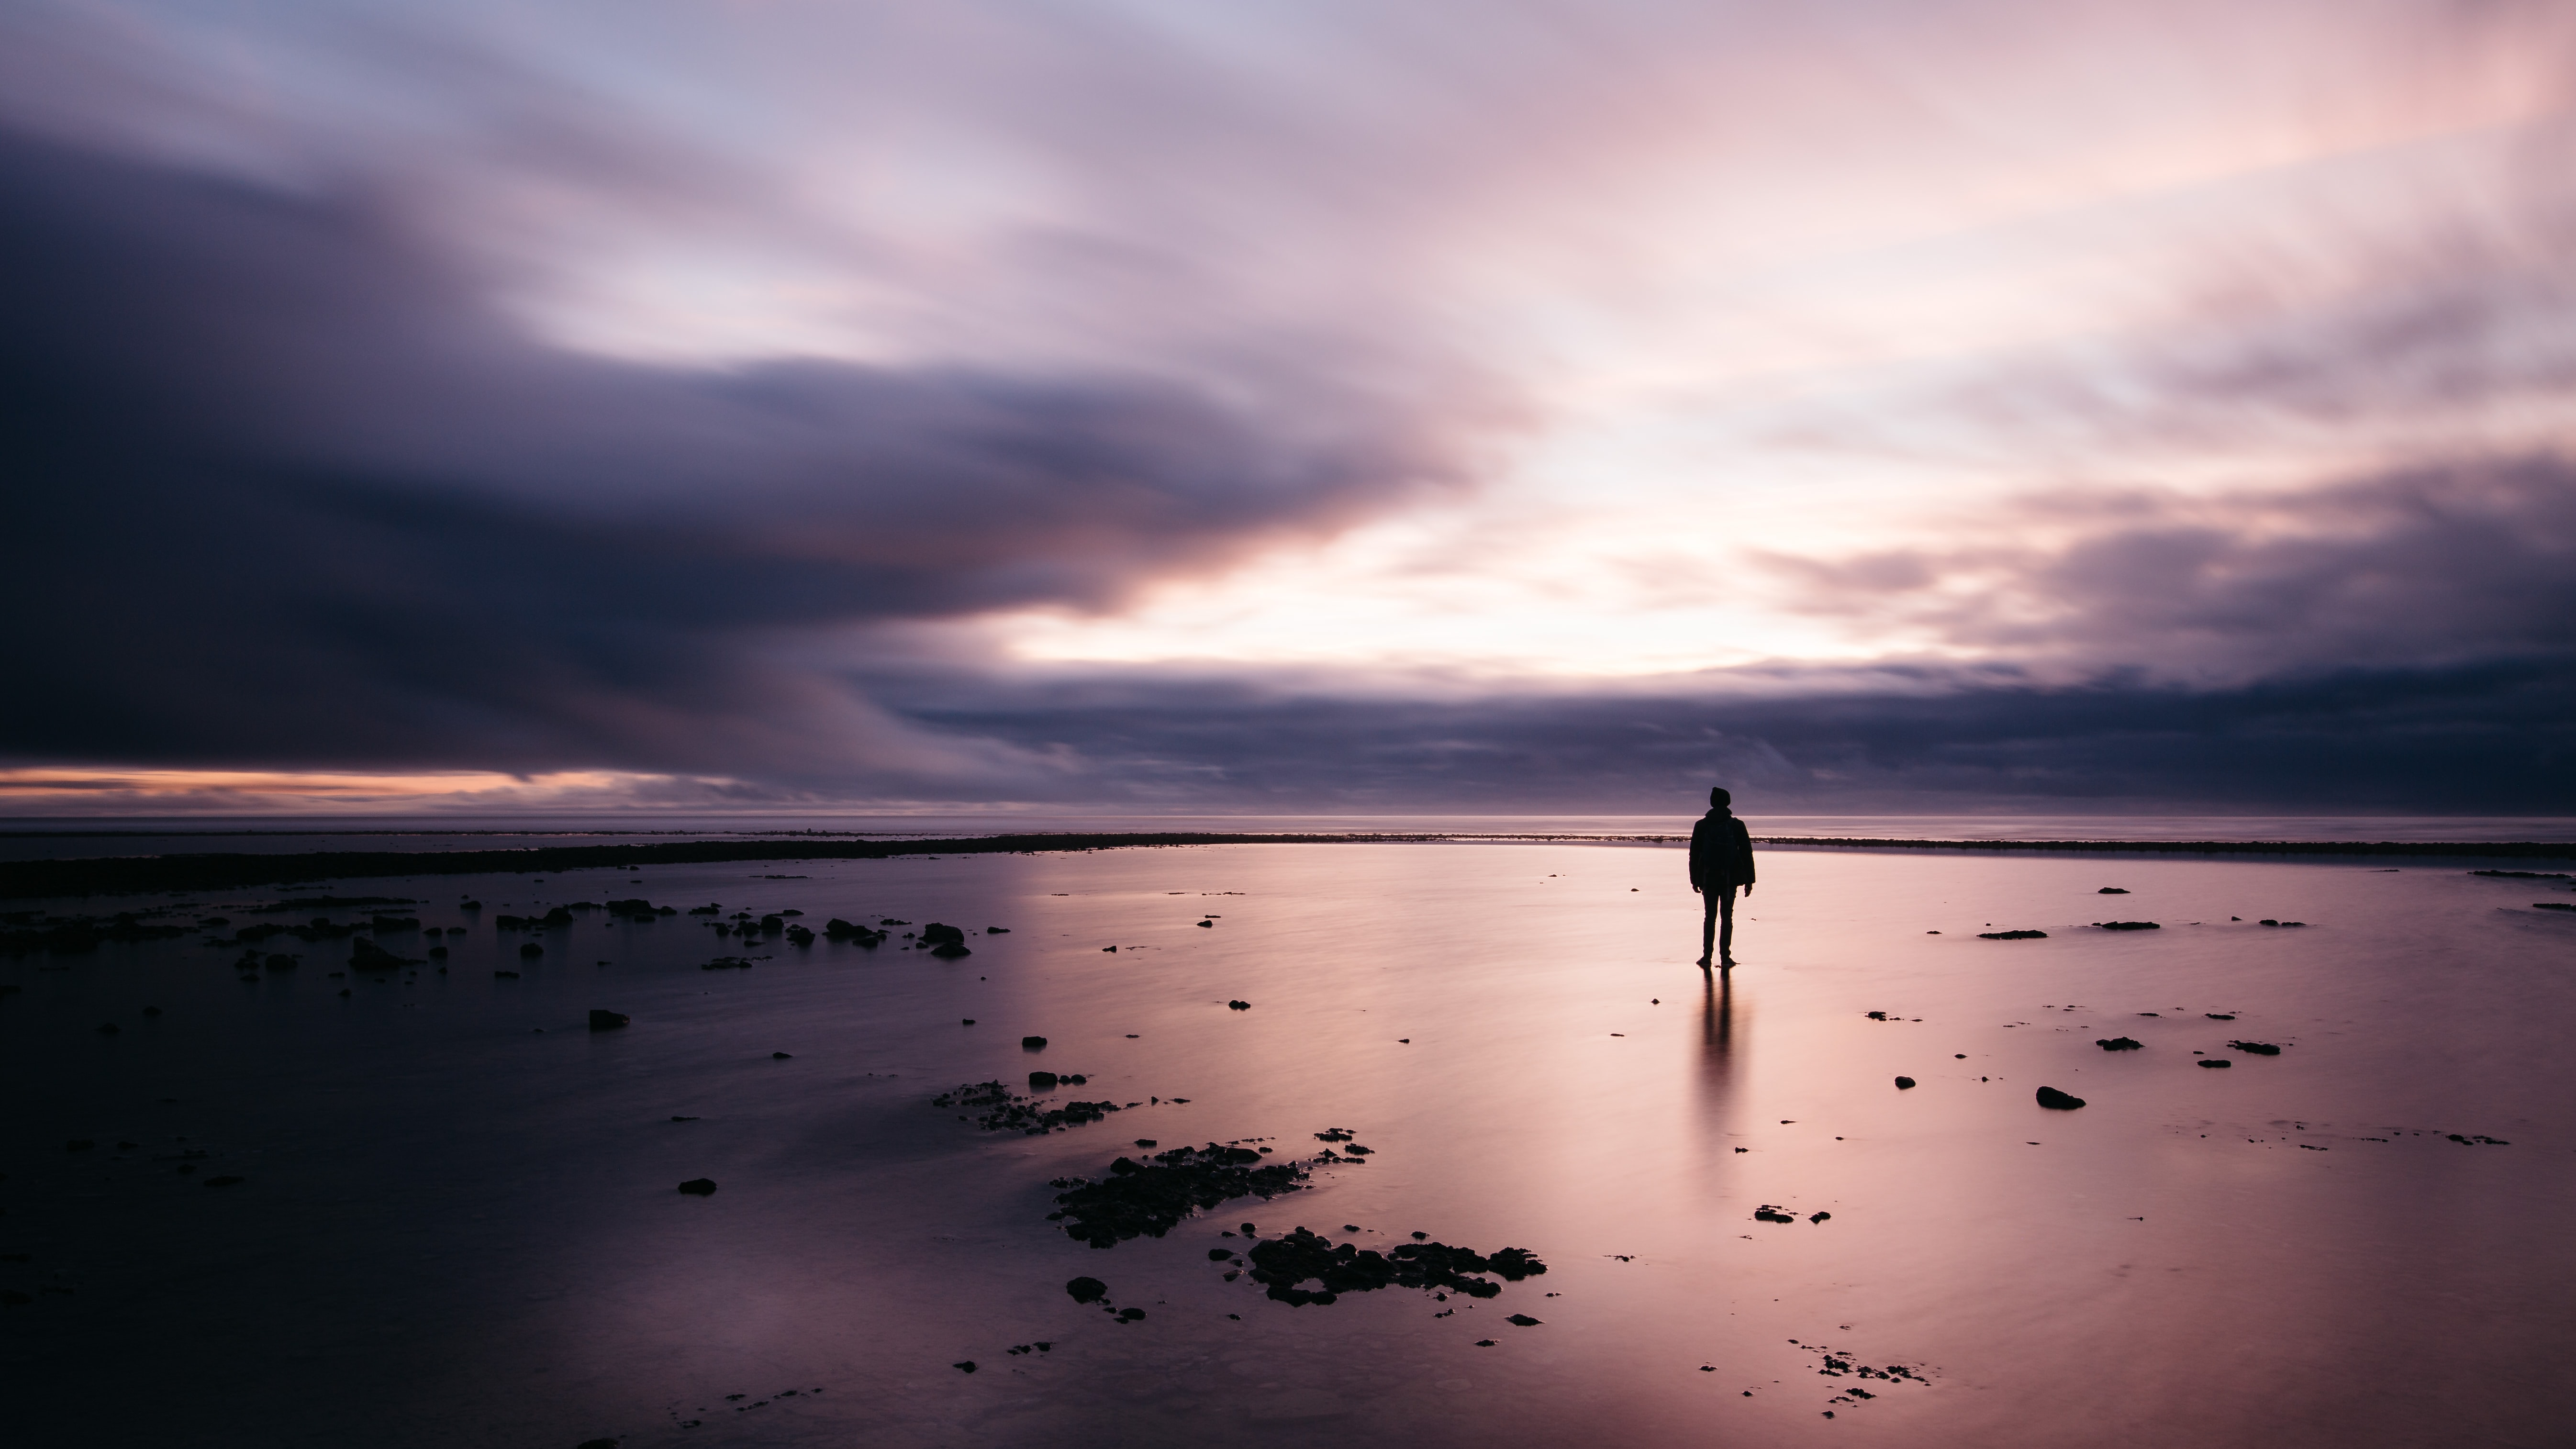 A lone man standing on a beach looking into a cloudy evening sky in Grignon